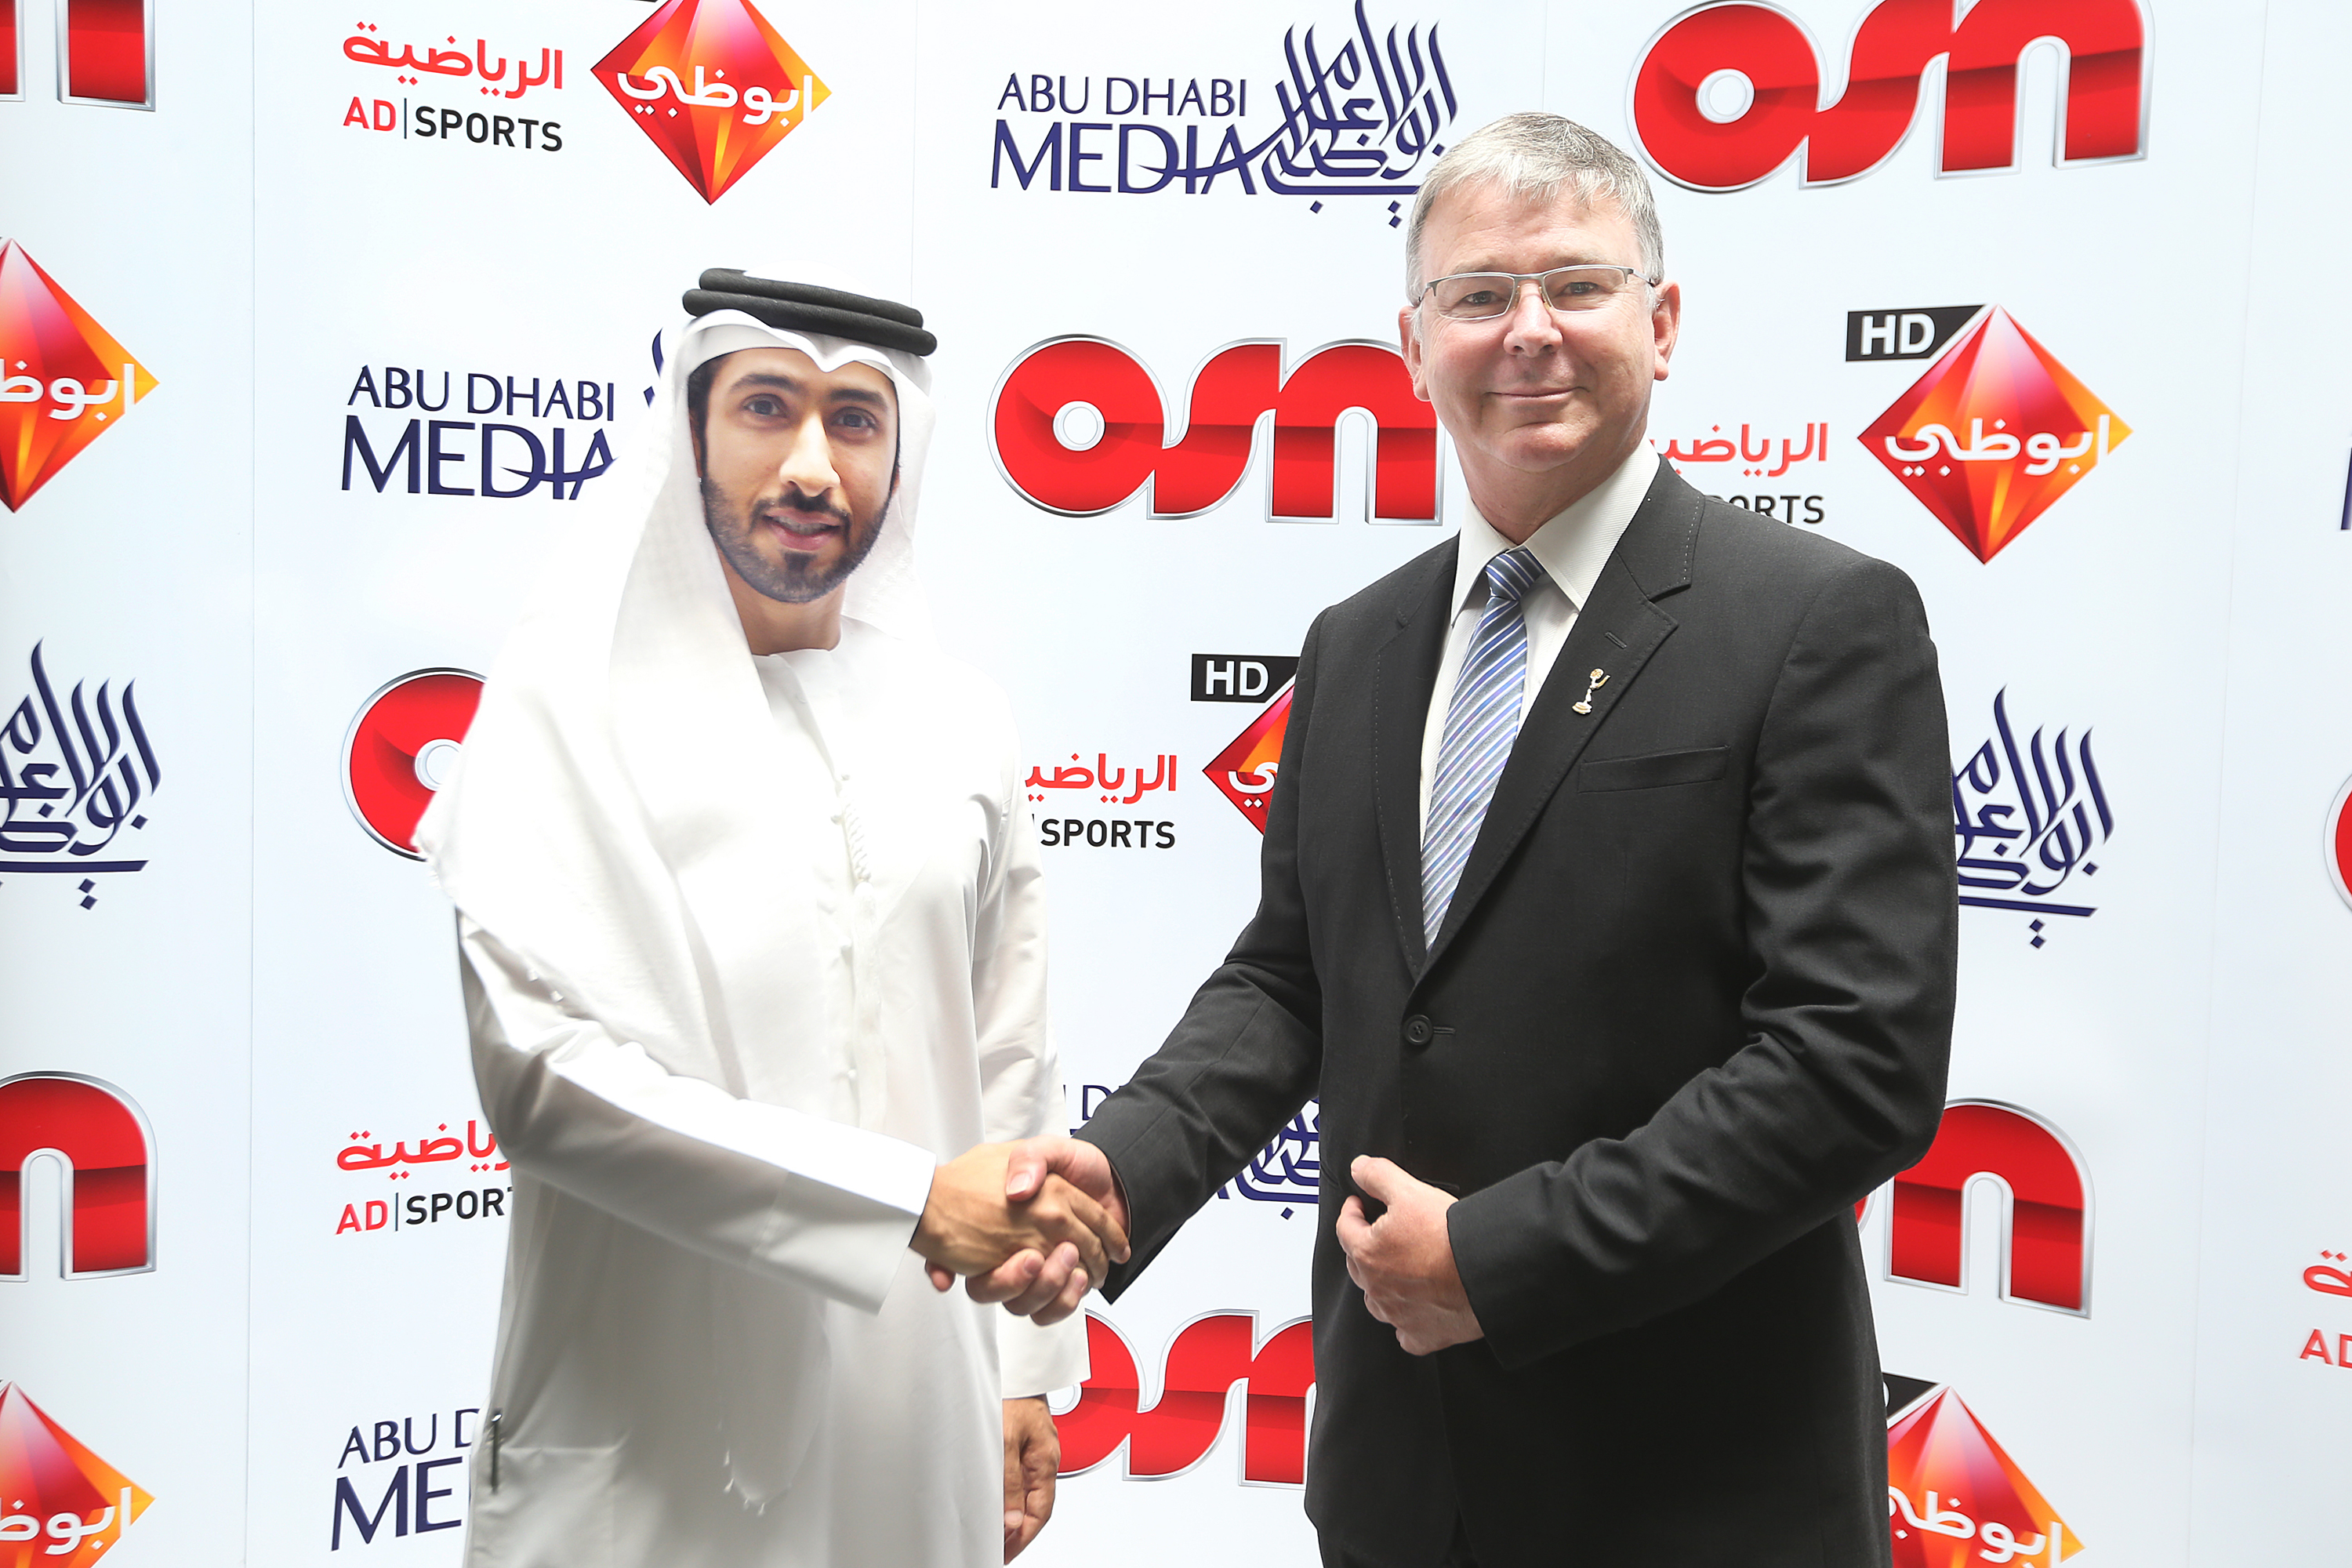 abu-dhabi-media-and-osn-announce-strategic-collaboration